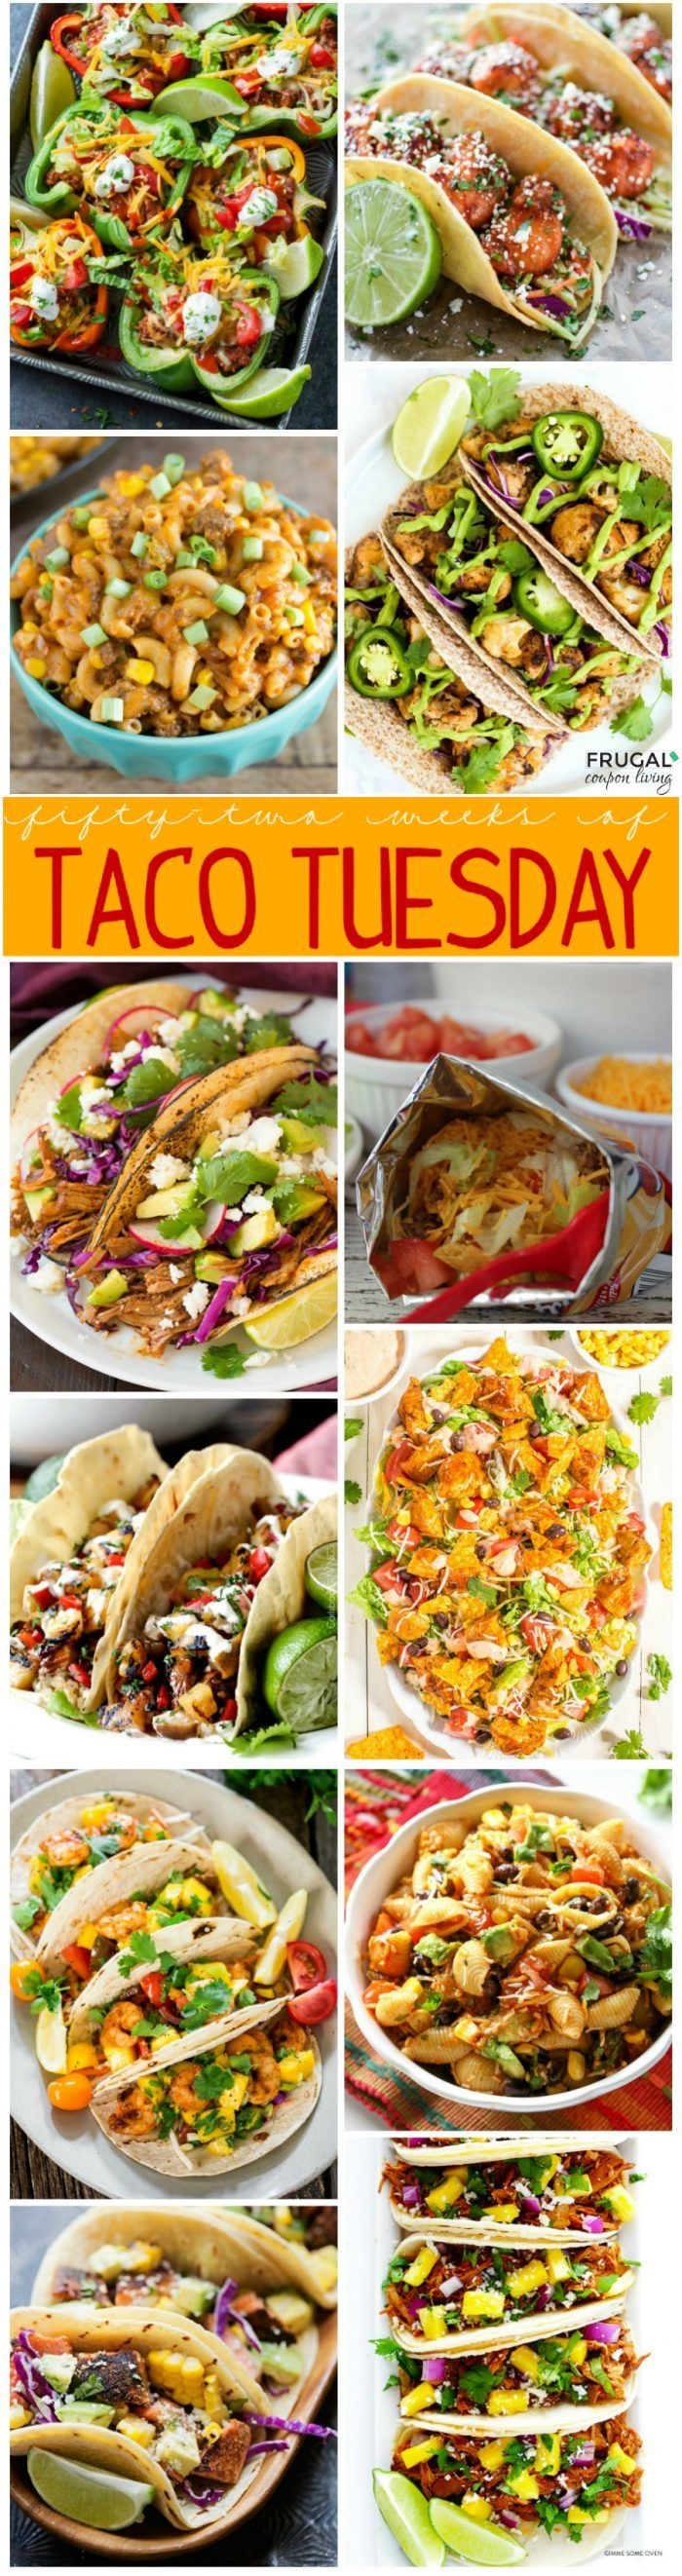 52 Weeks of Taco Tuesday Recipes - One Year of Taco recipes on Frugal Coupon…